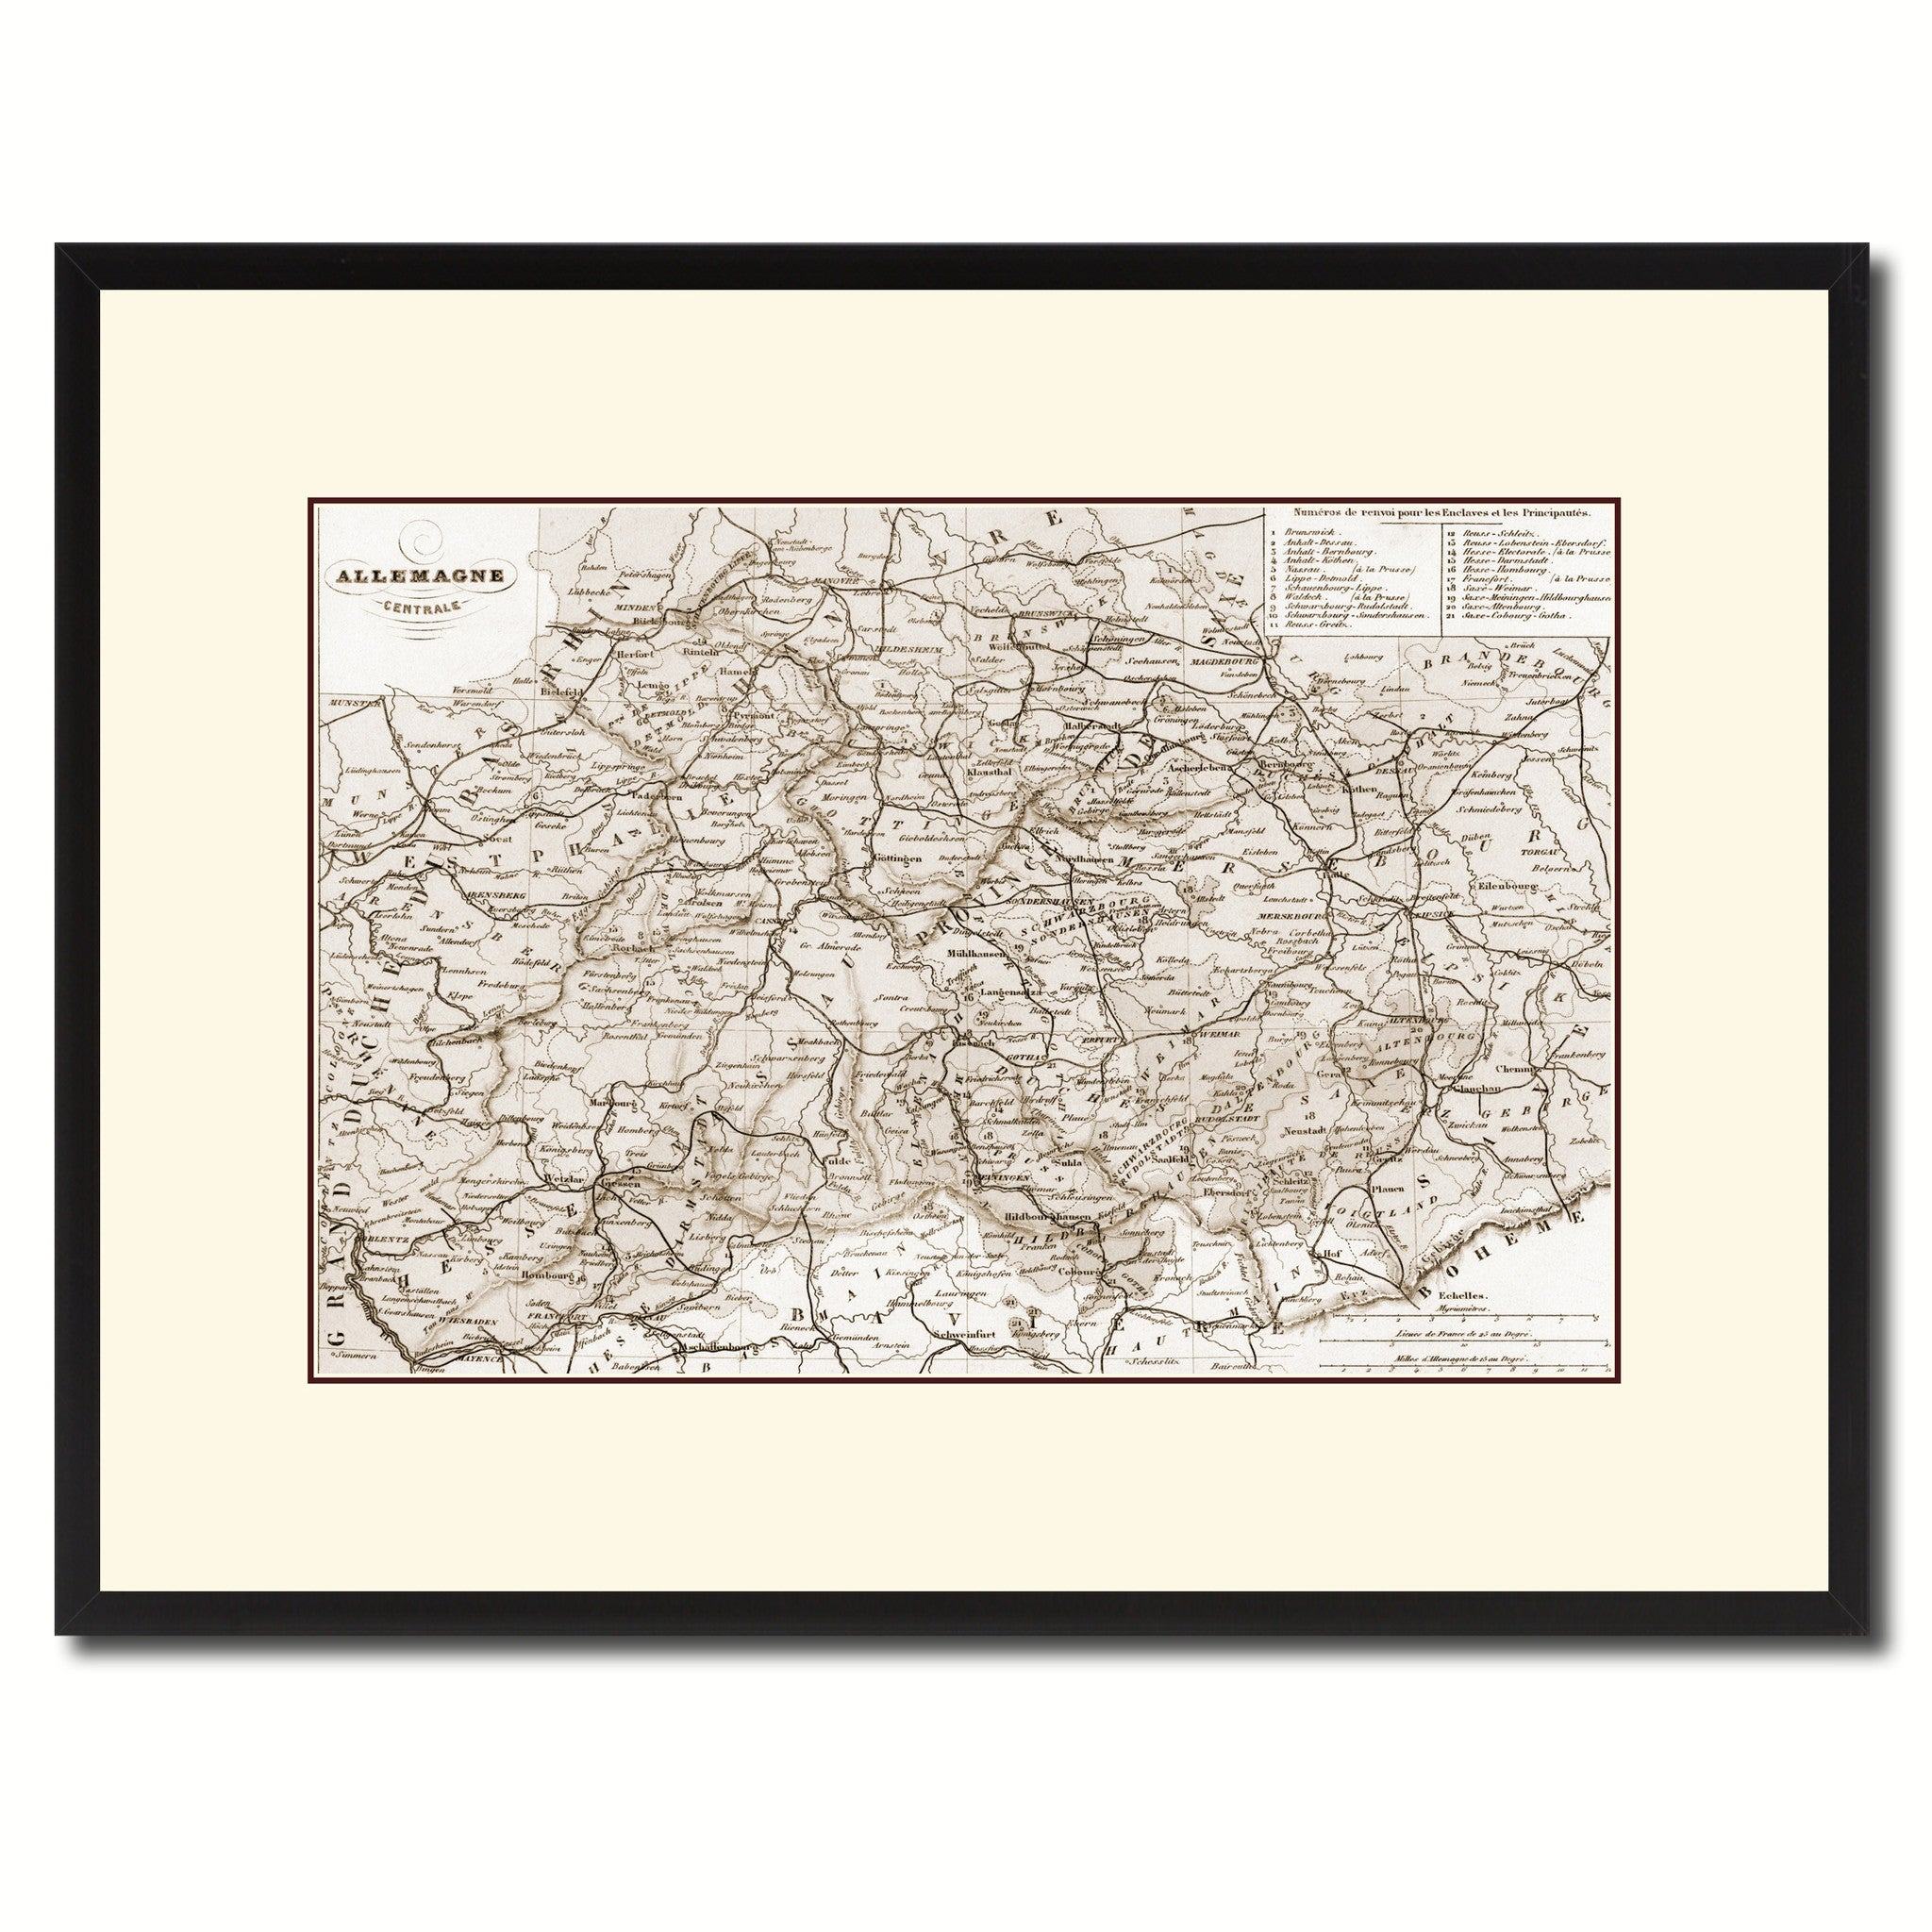 Central Germany Vintage Sepia Map Canvas Print, Picture Frame Gifts Home  Decor Wall Art Decoration